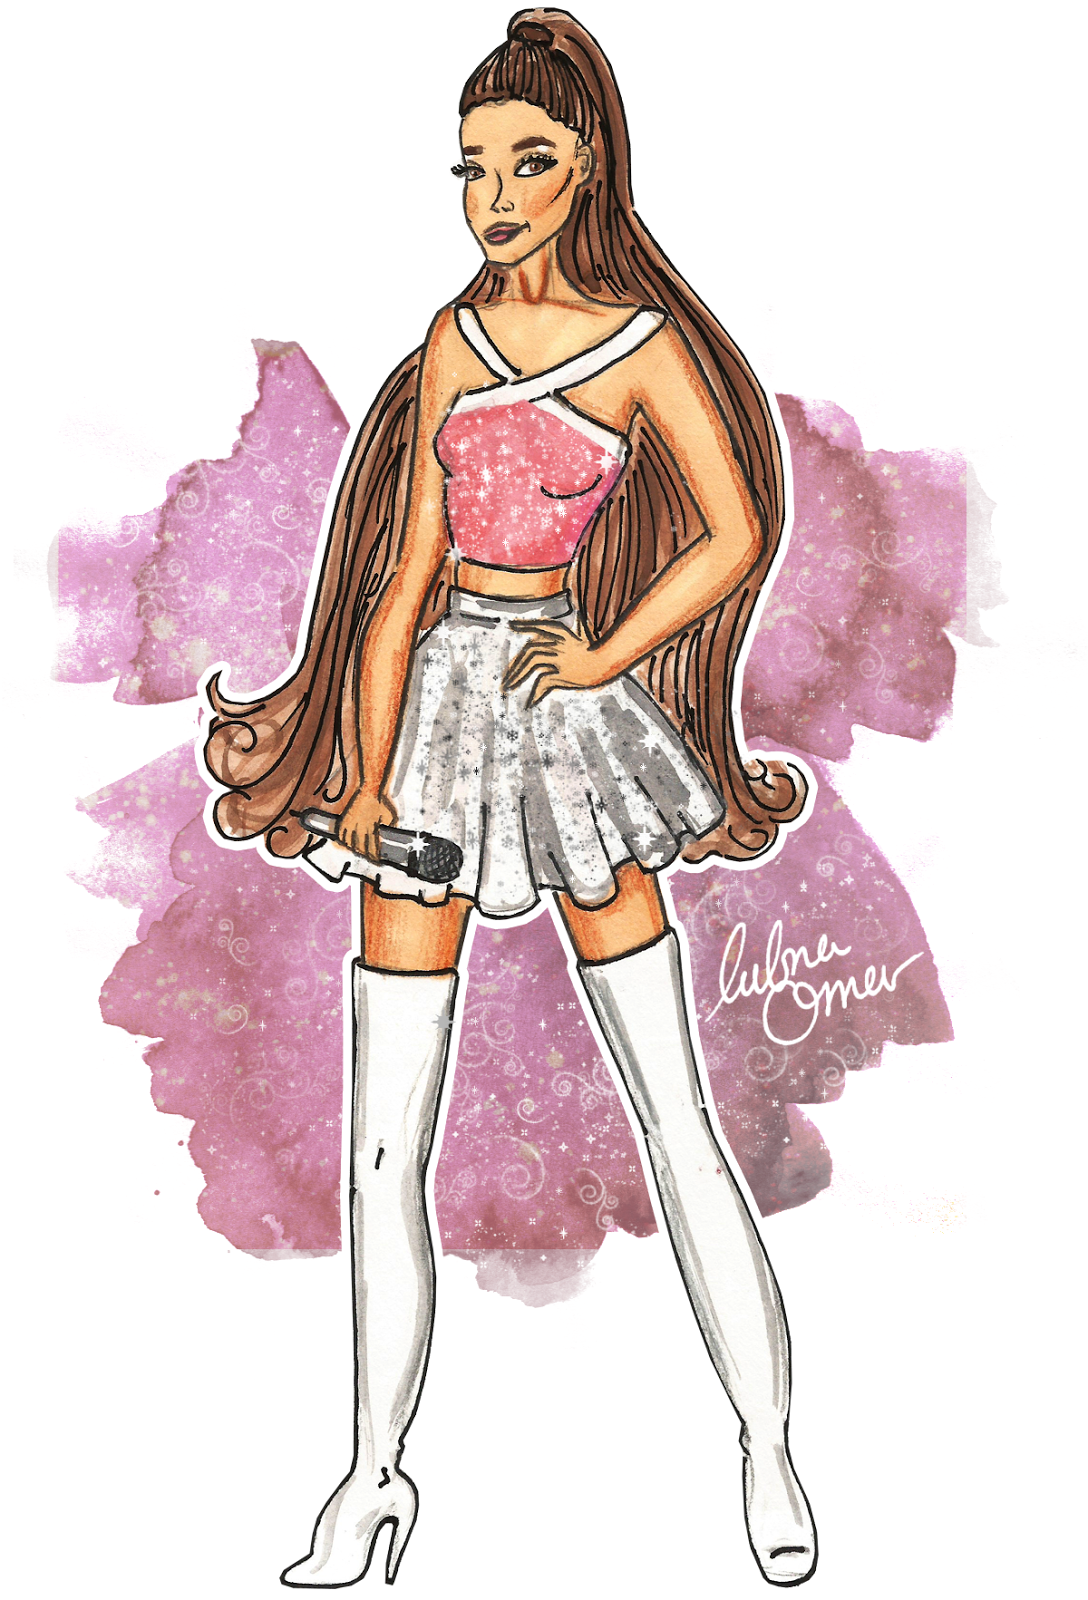 Ariana Grande illustration by Lubna Omar